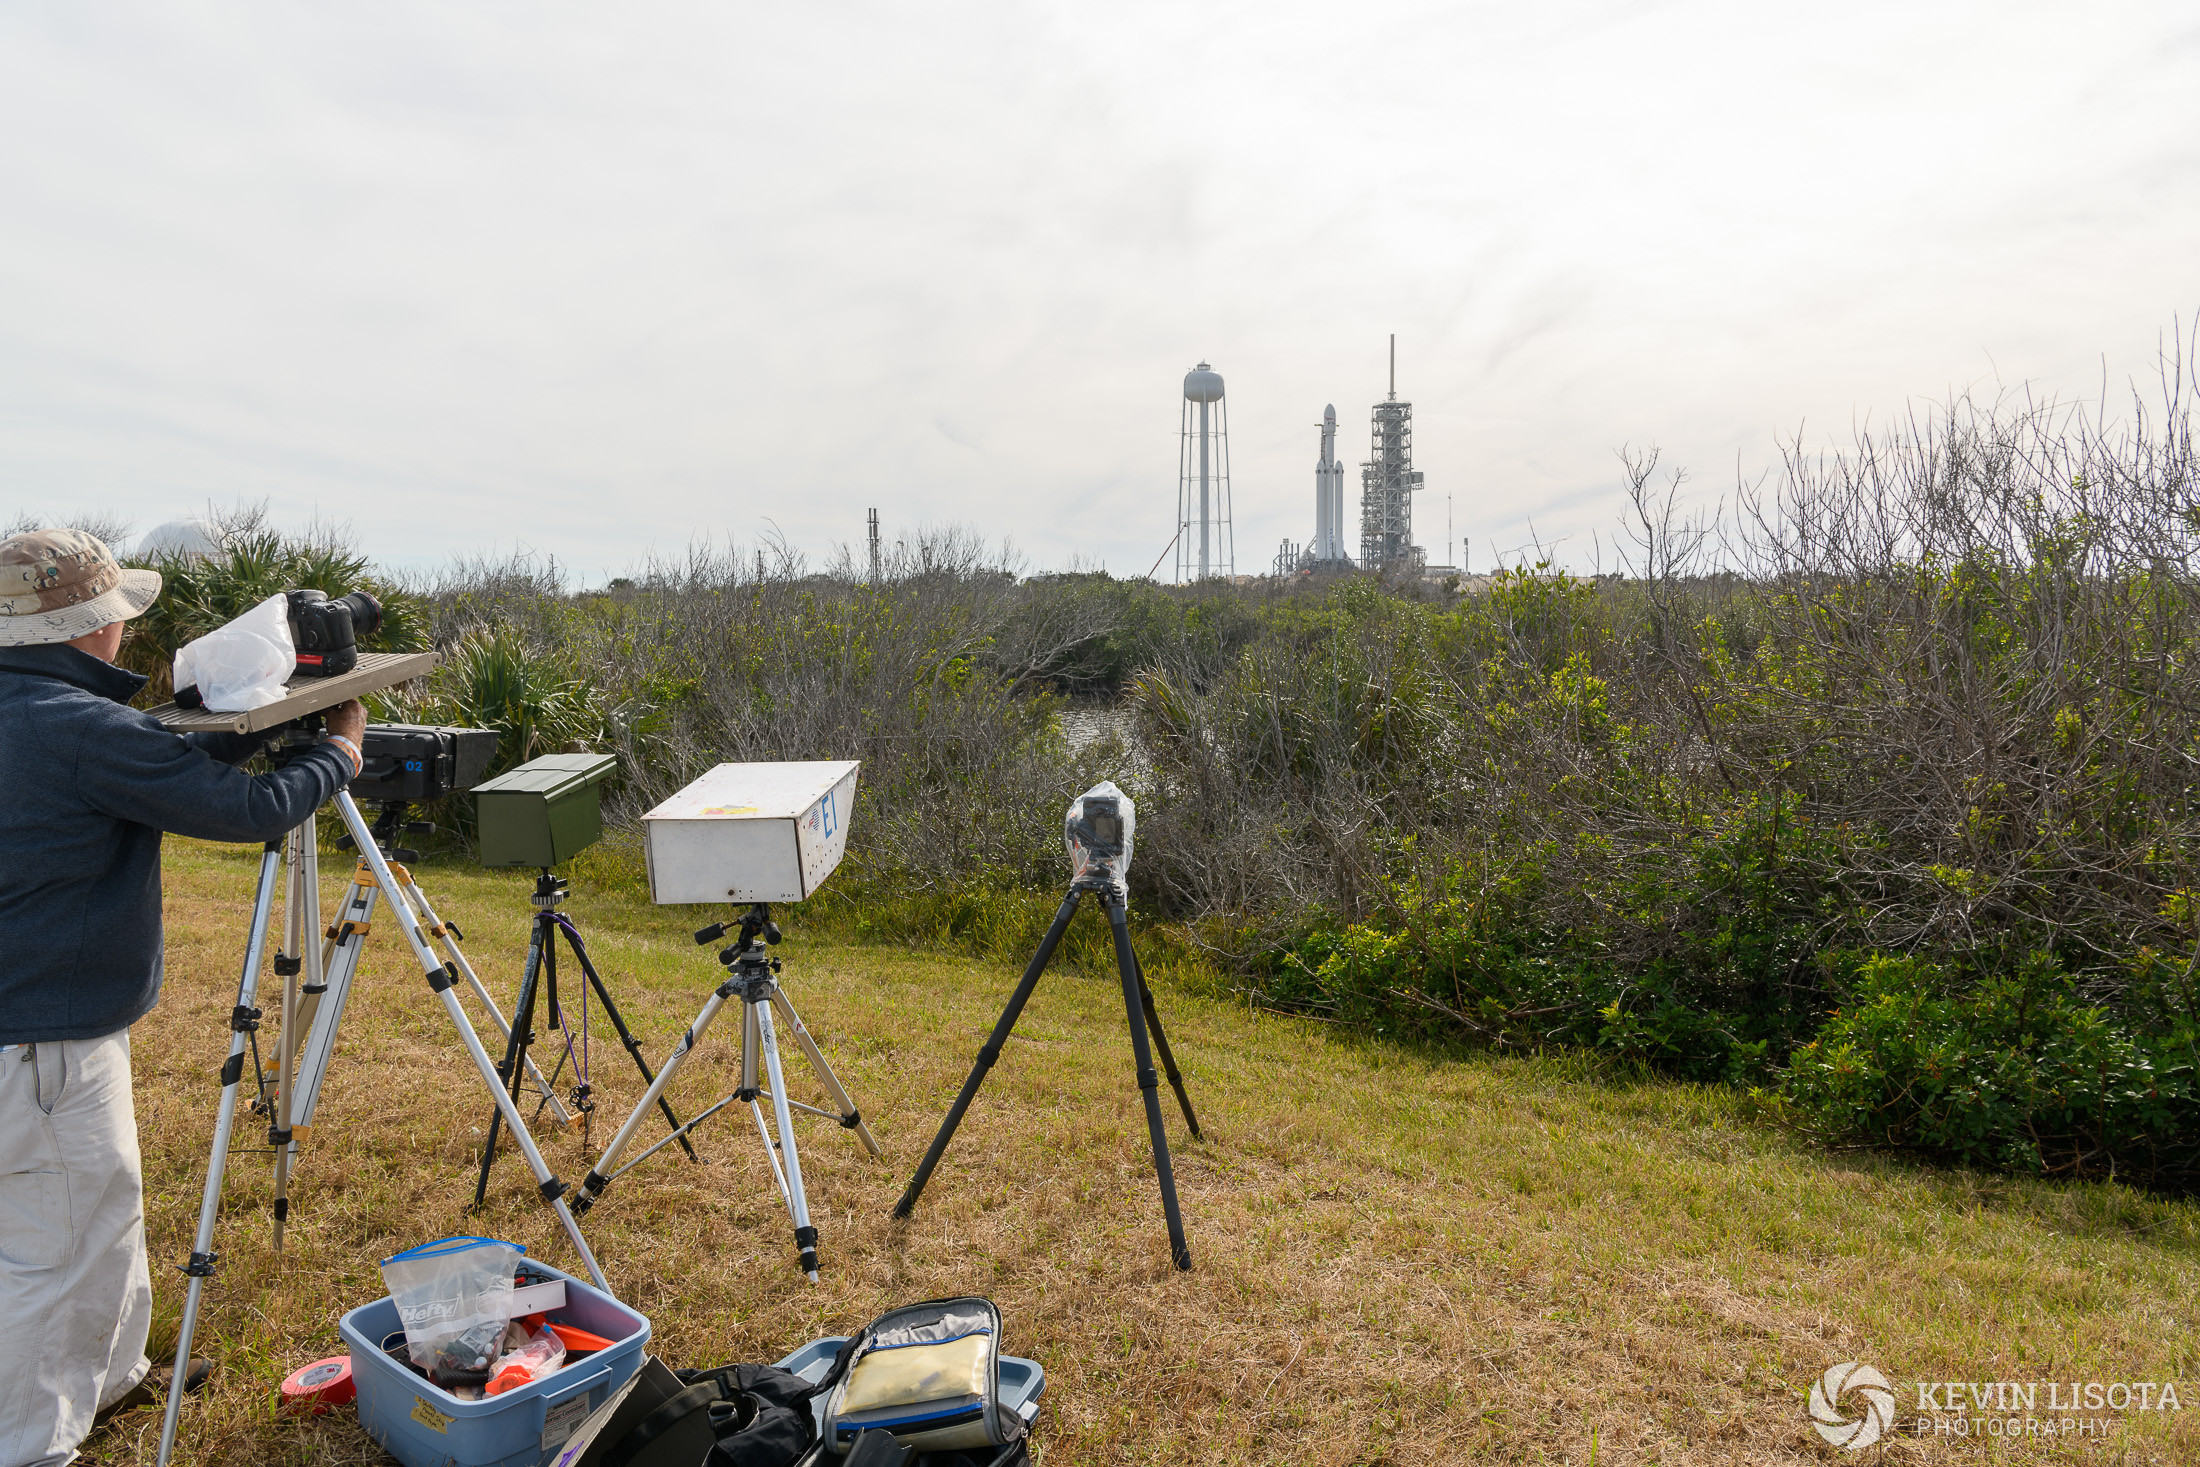 Camera location #1 ~2200 ft away from launchpad